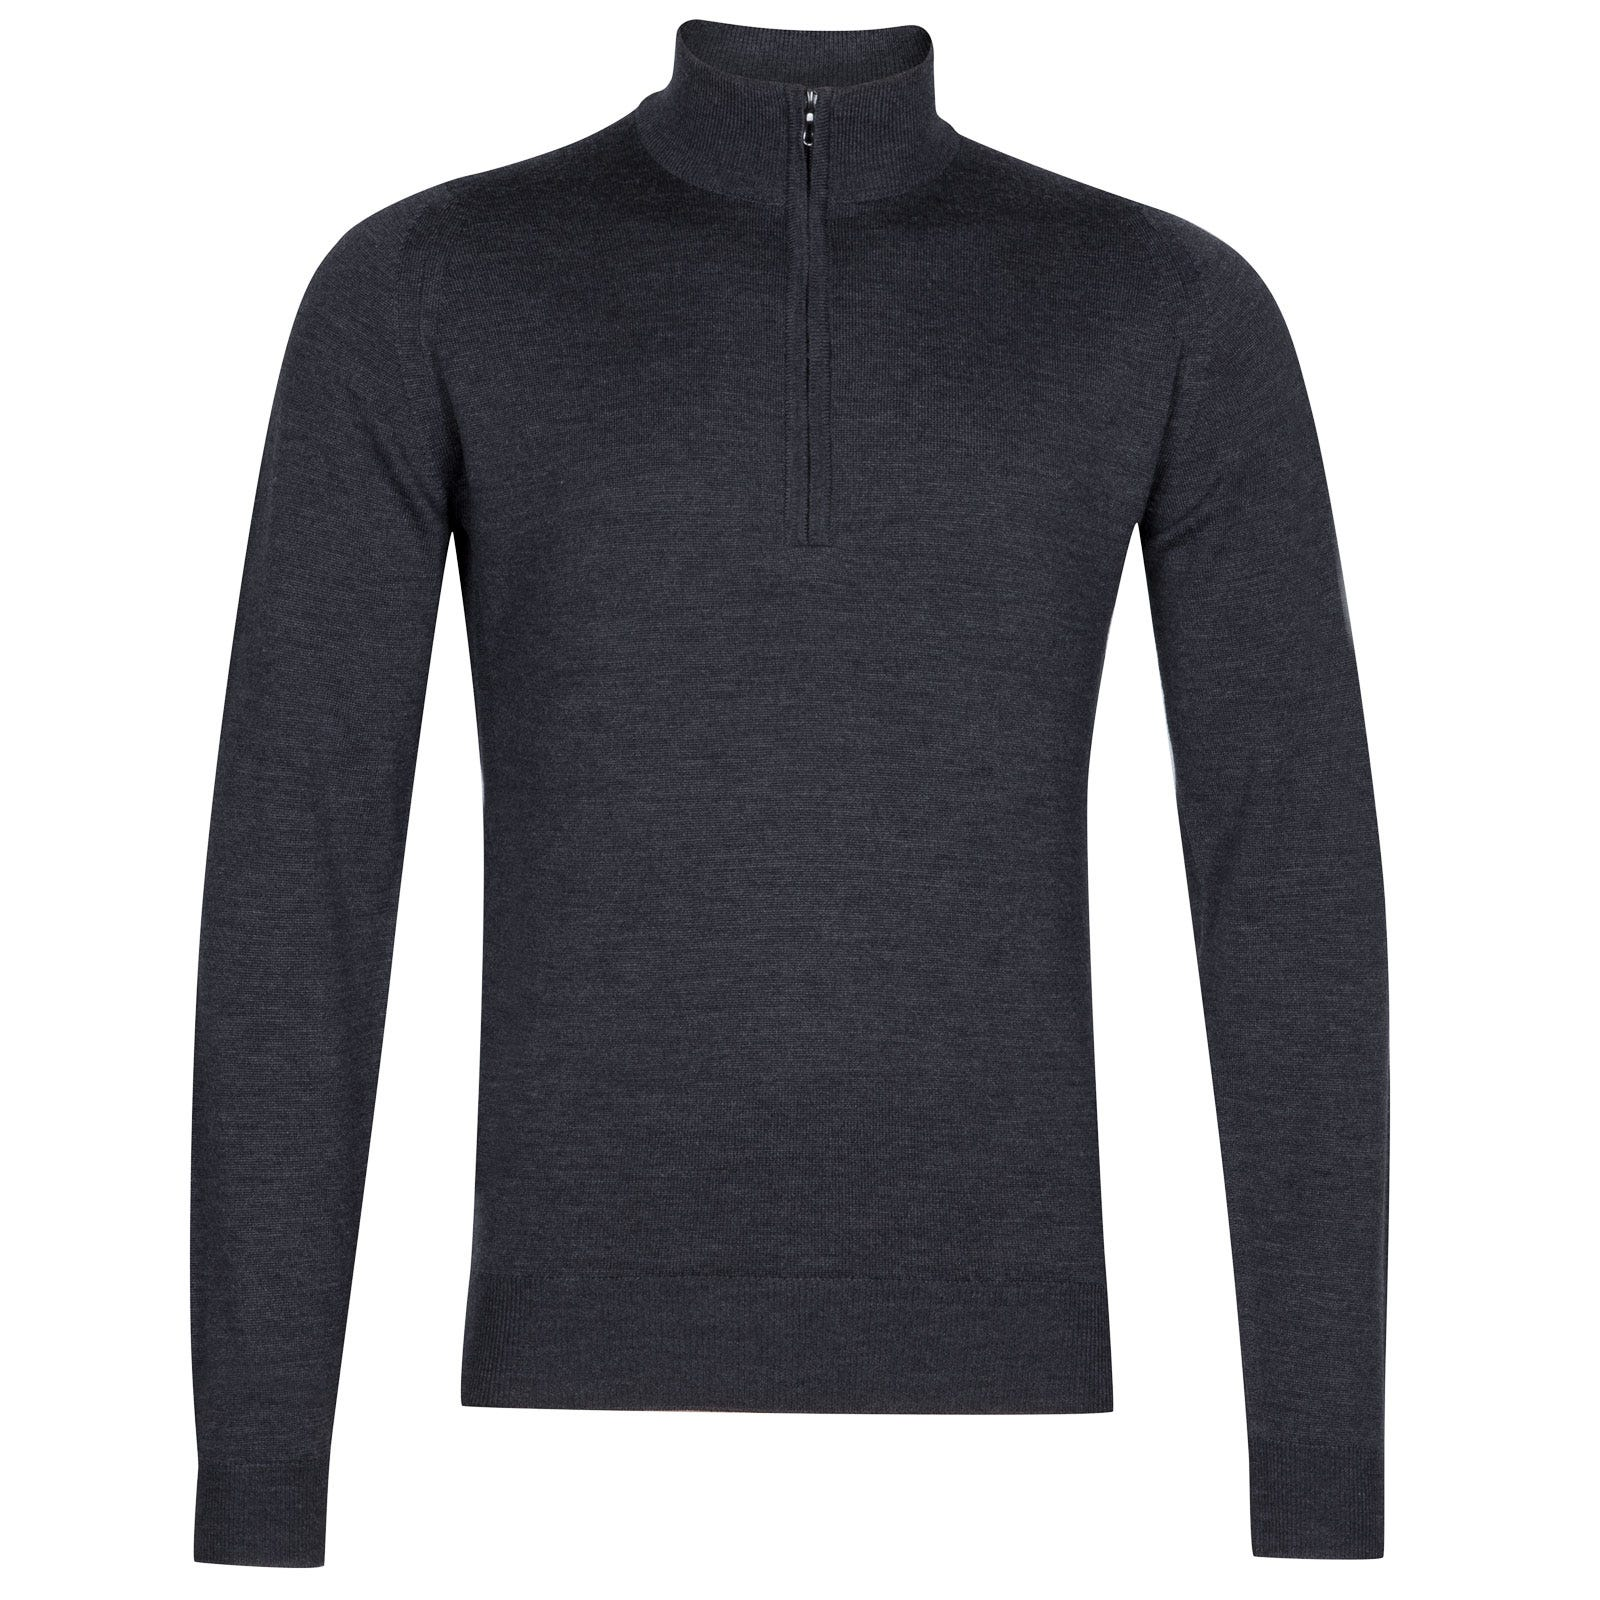 John Smedley tapton Merino Wool Pullover in Charcoal-XXL